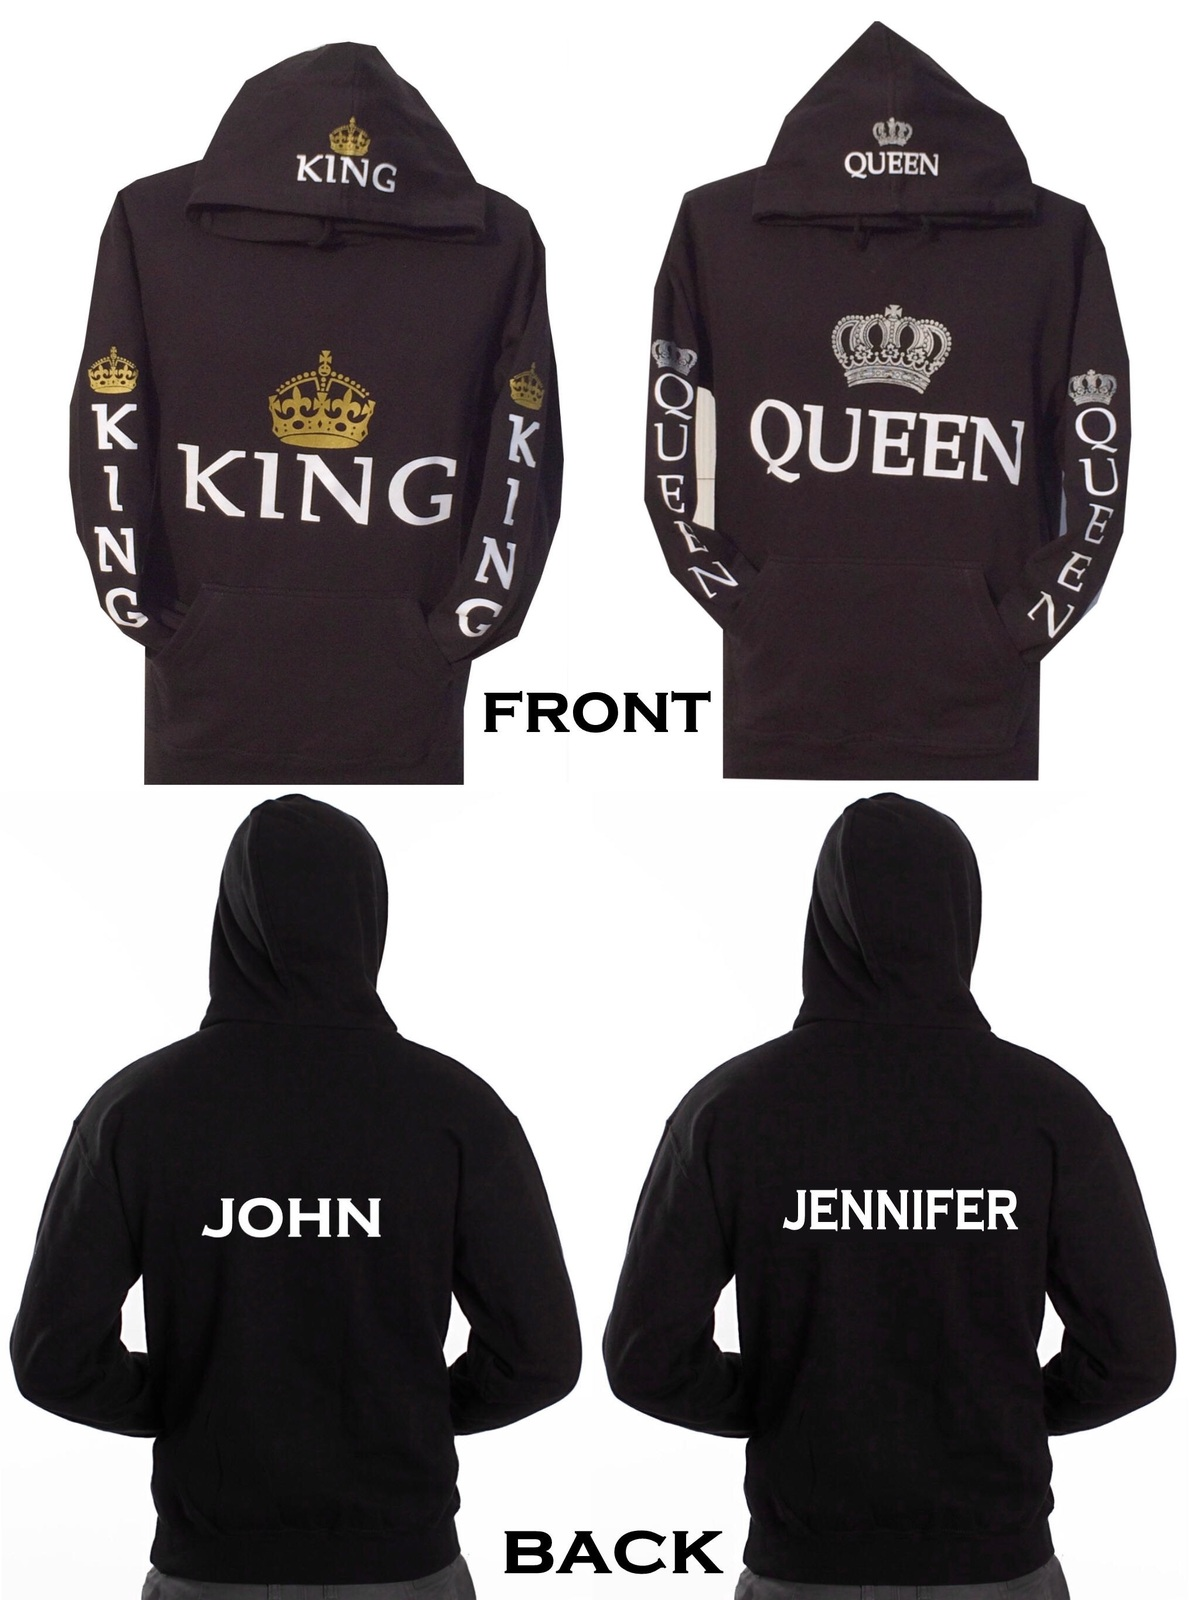 Couple Matching King and Queen Hoodie Color Black Hooded Sweatshirt +Your Name o